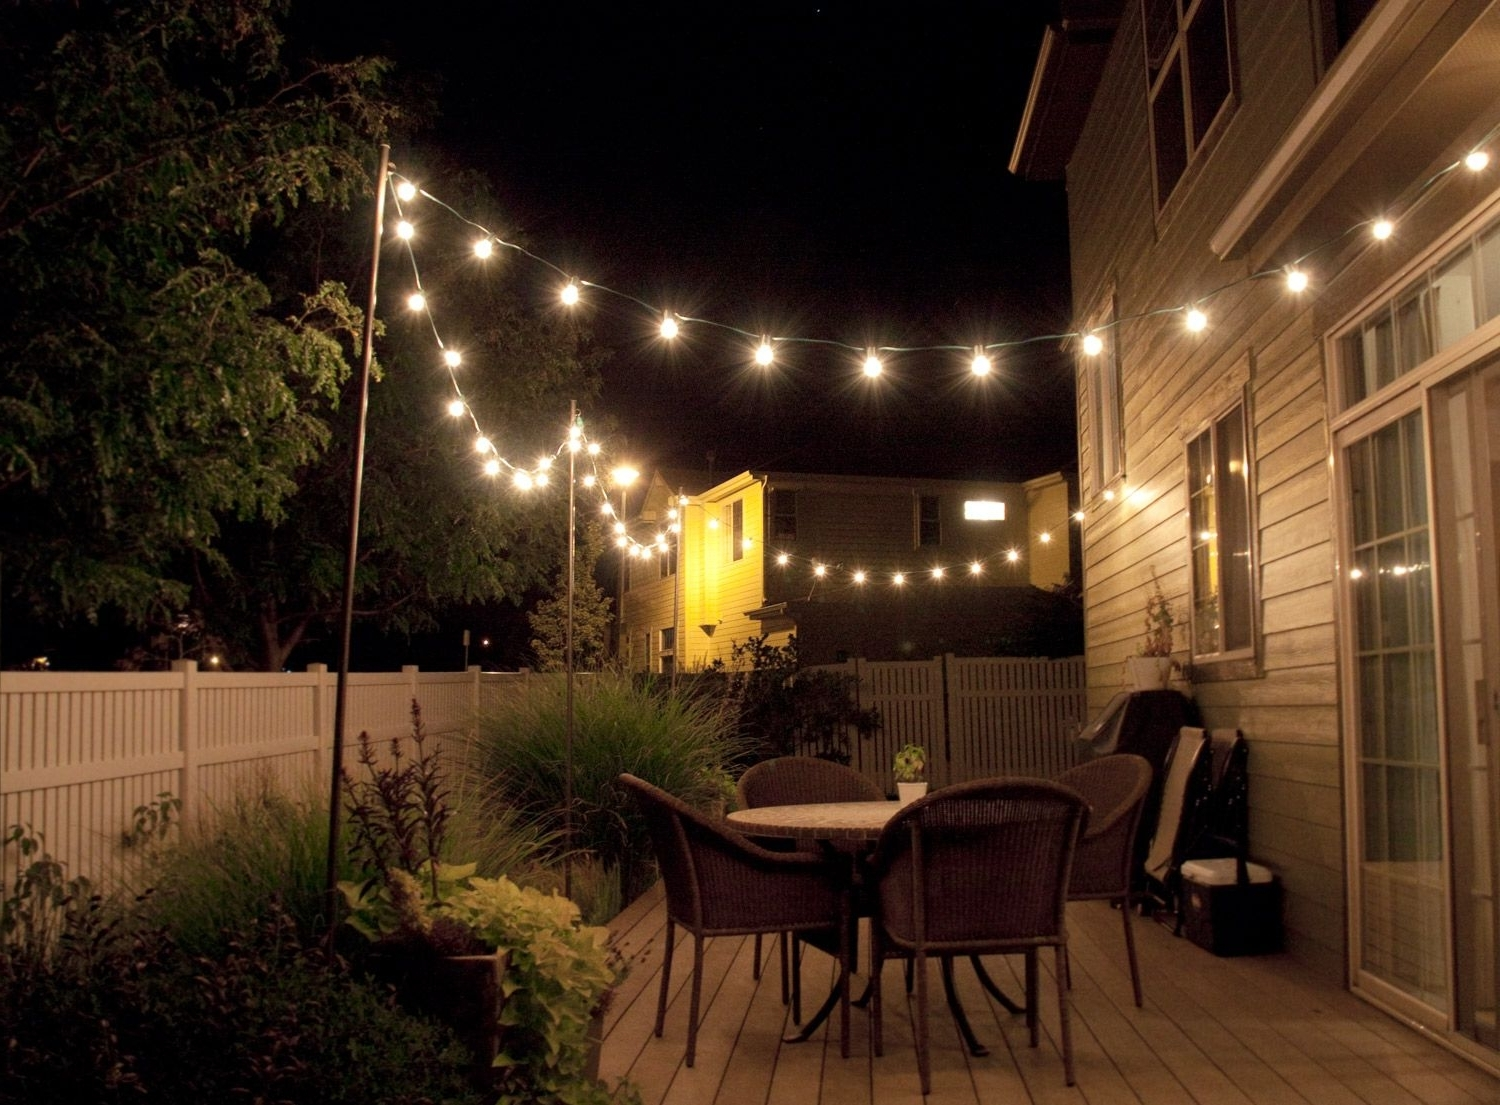 2019 Pole Hanging Outdoor Lights With Regard To How To Make Inexpensive Poles To Hang String Lights On – Café Style (View 5 of 20)